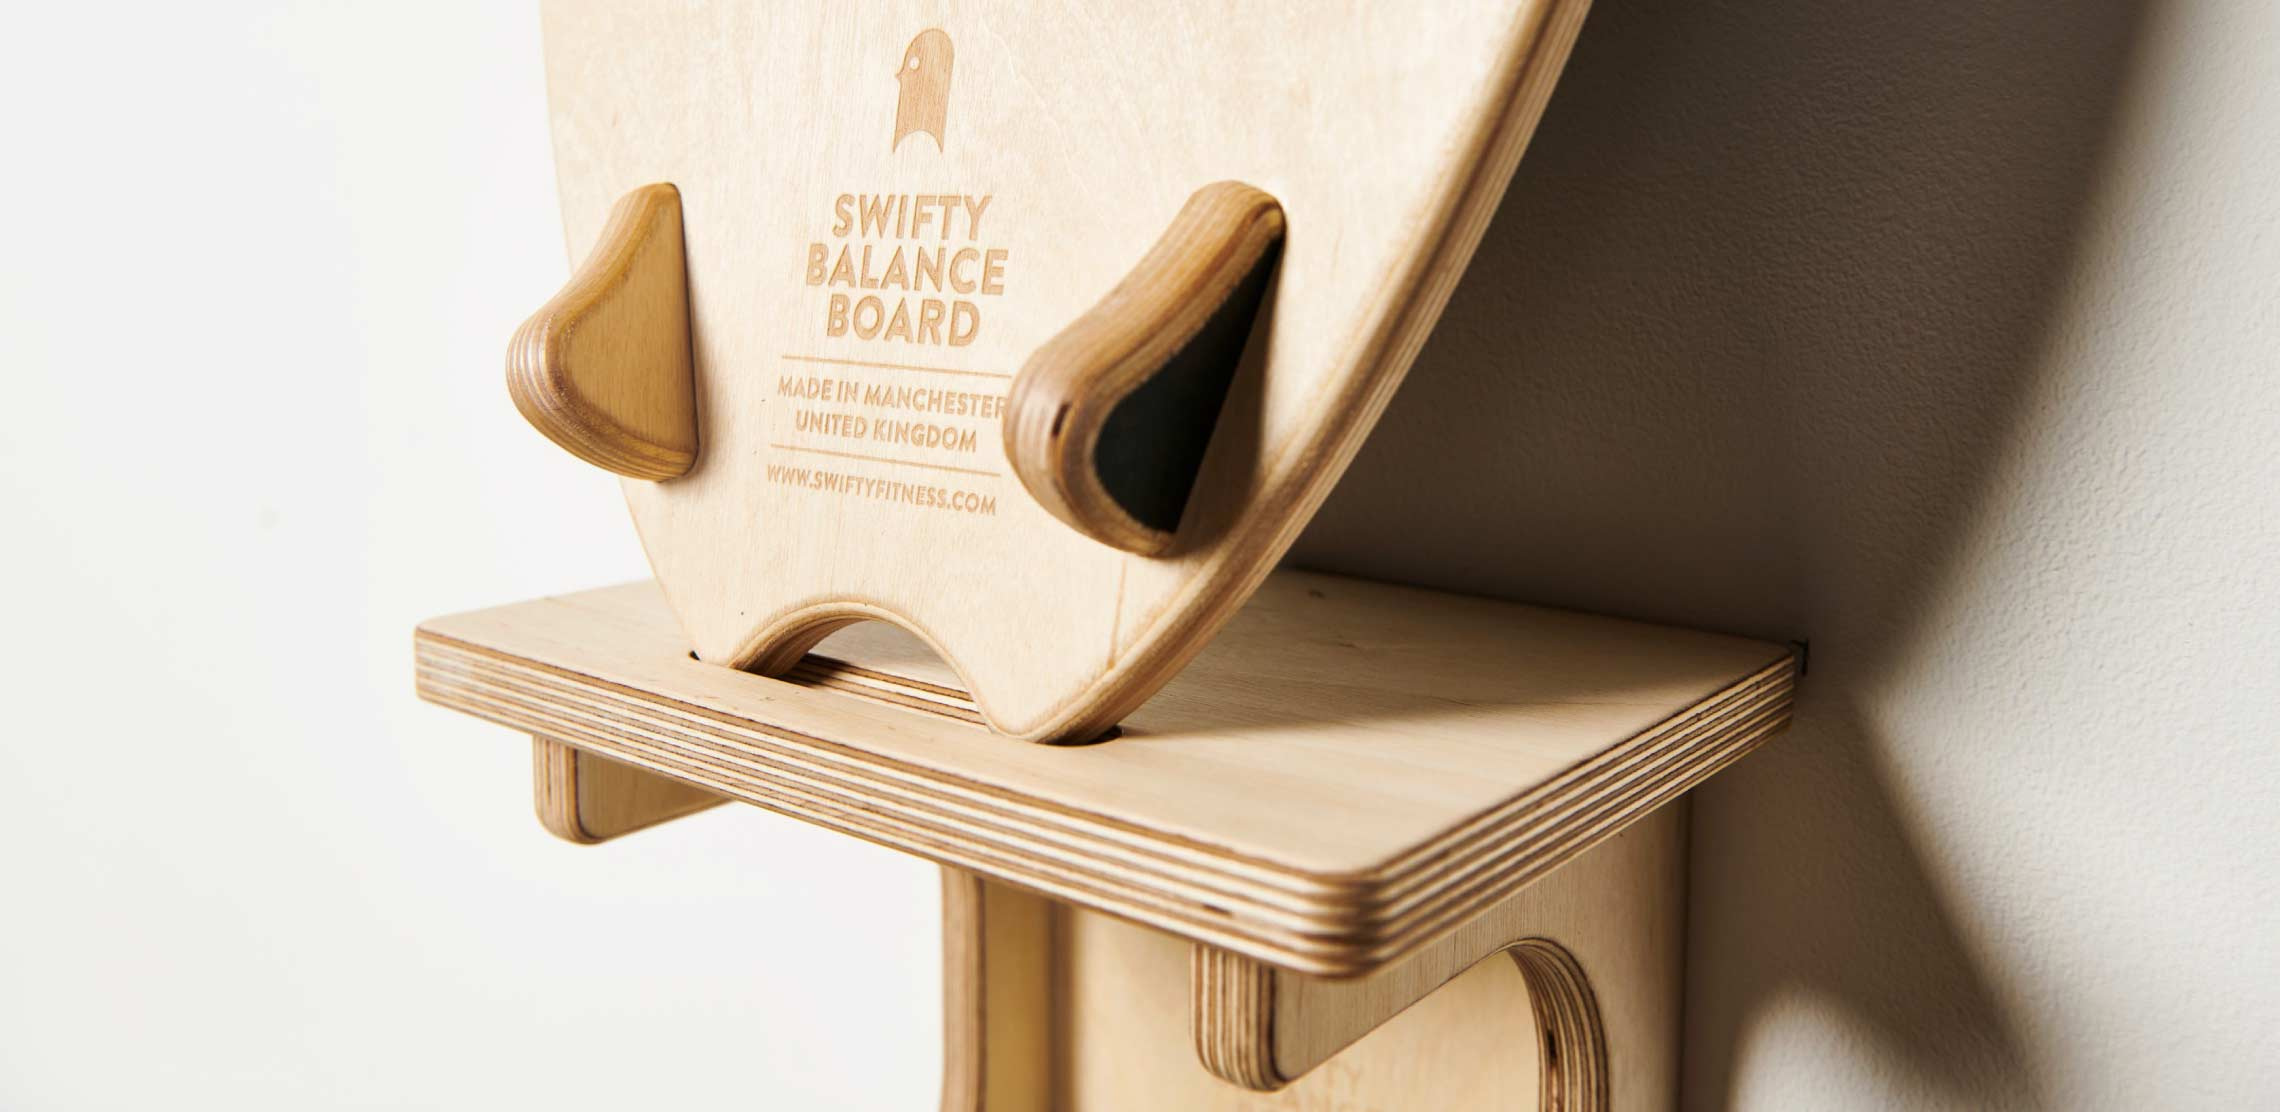 Swifty Balance Board - DISPLAY YOUR BOARD ON THE WALL